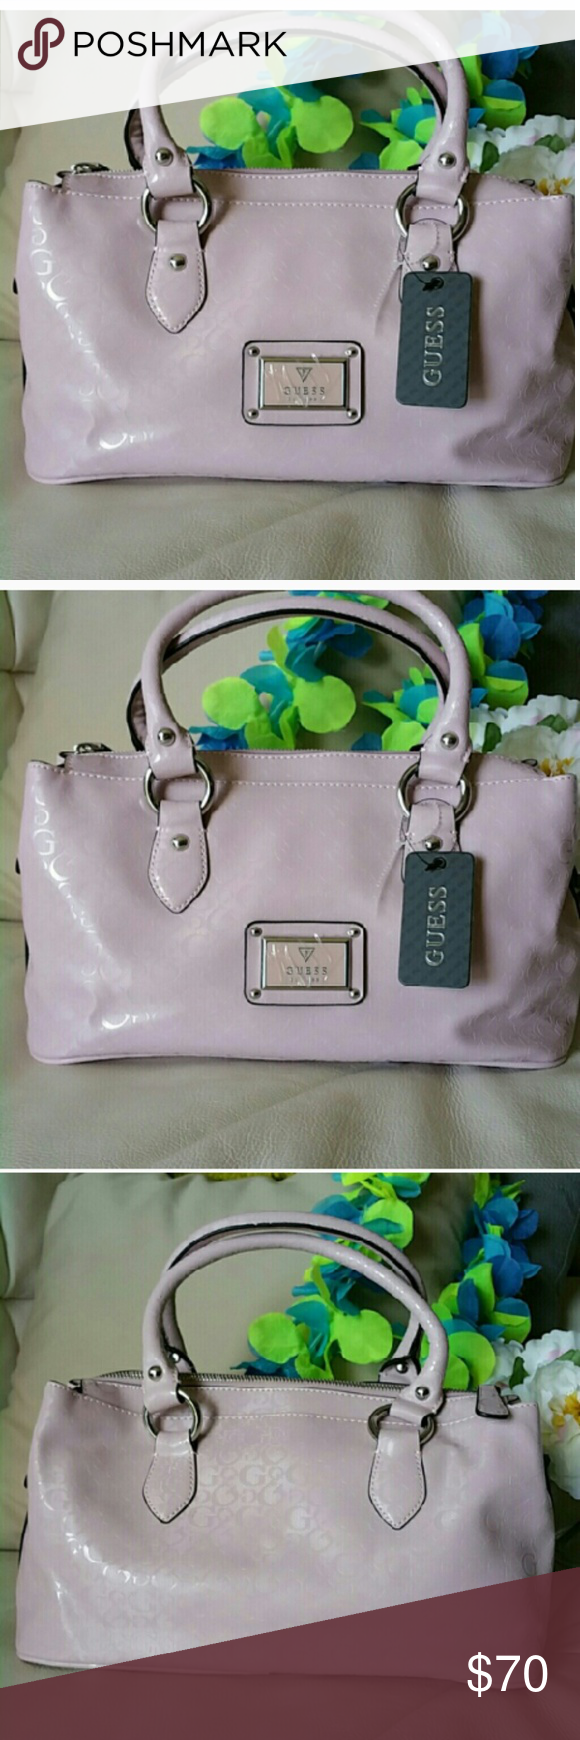 3959c8685a0 NWT Guess rose hued by Marciano brand new handbag NWT beautiful Guess by  Marciano, brand new handbag with a soft rose hued color(hard to caprure in  pic ) ...